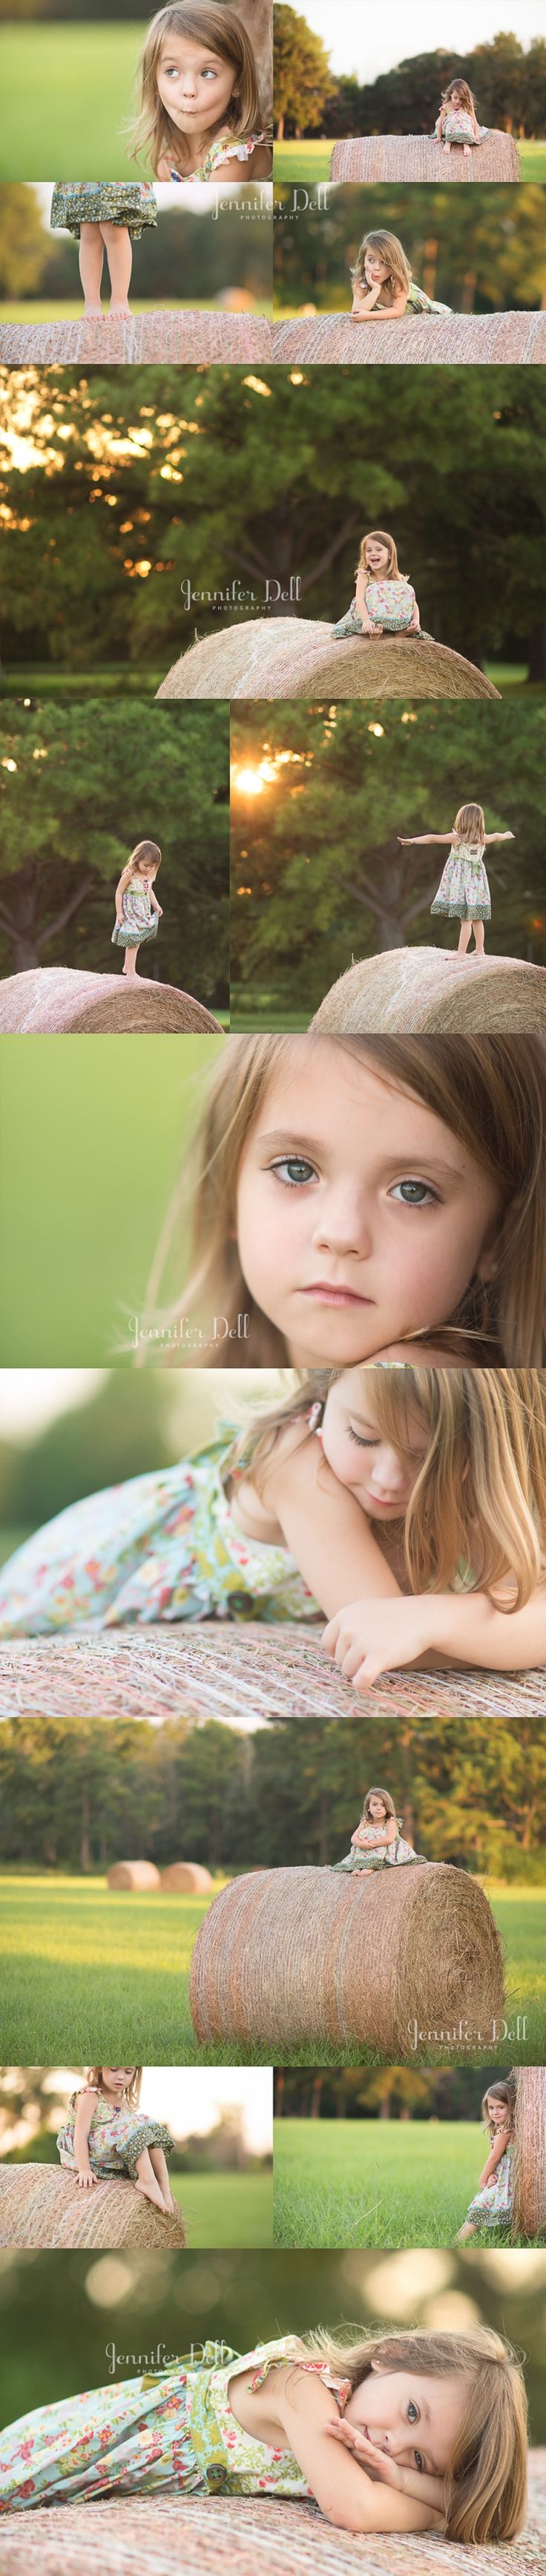 houston-child-photographer © Jennifer Dell Photography | 2012